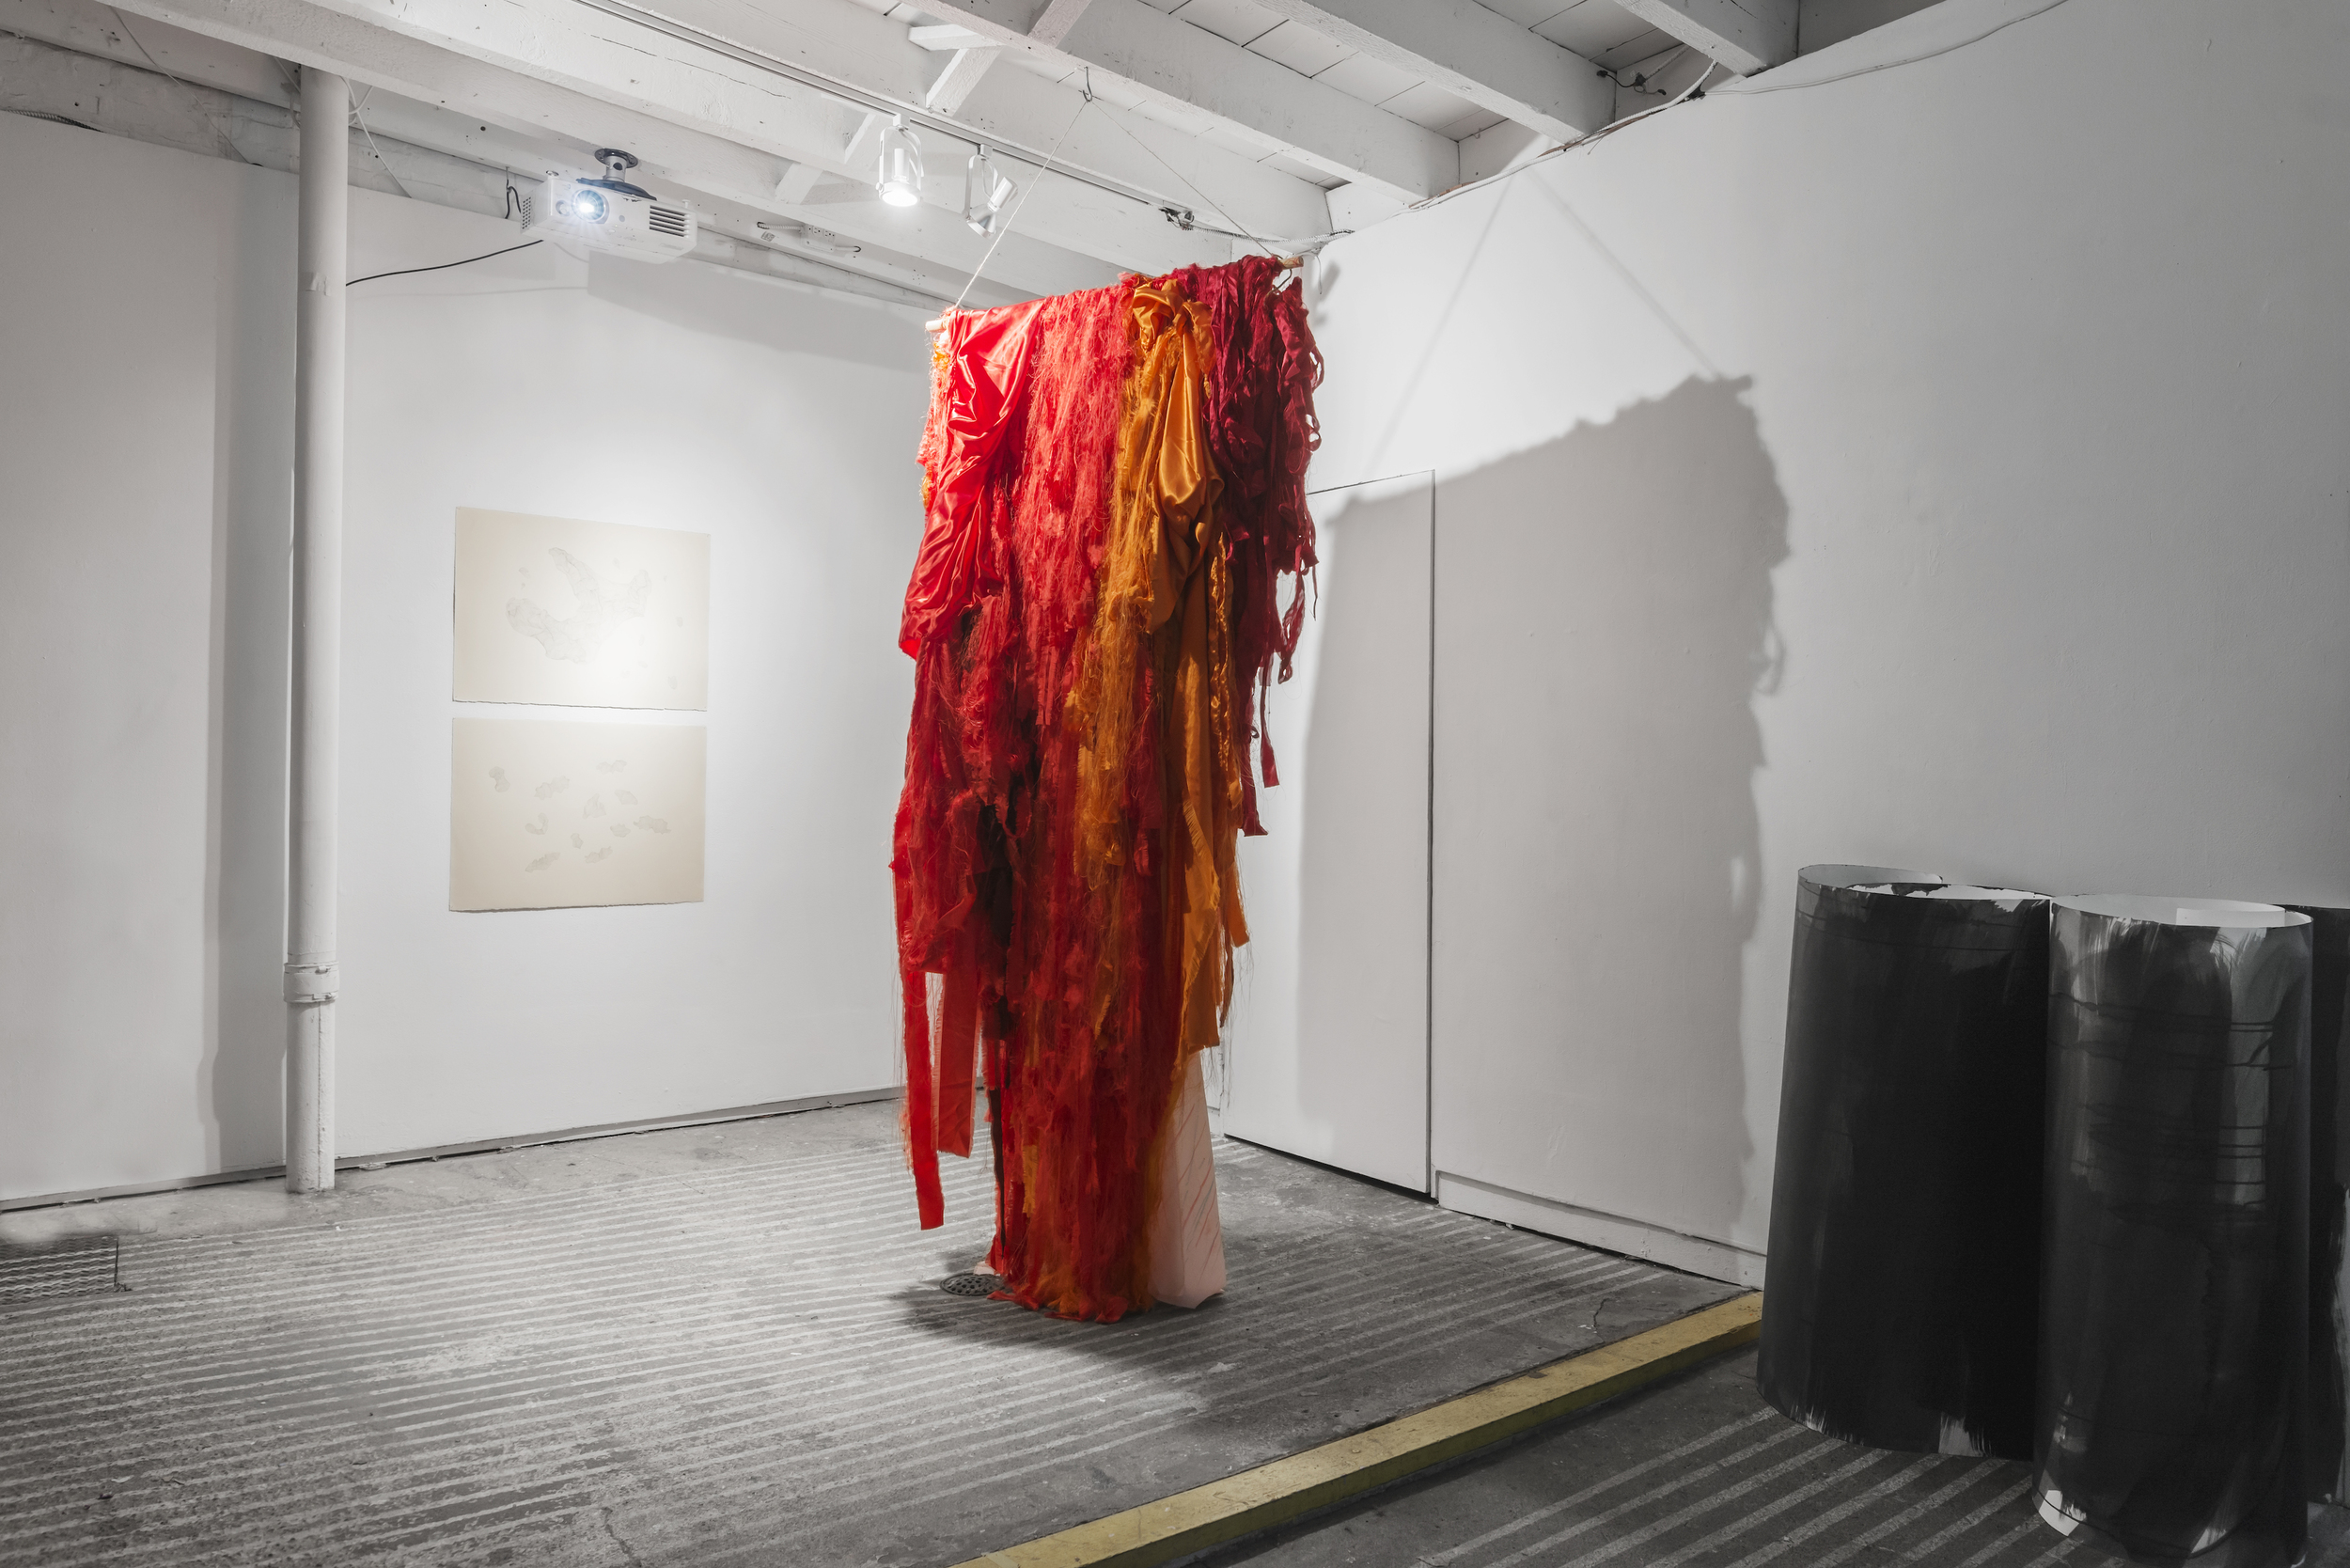 Kristin Velle-George    Escalate I & II , 2014 Graphite on paper 54 x 77 (each)   Elin Melberg    Float (red) , 2015 Torn textile, embroidery, dry pastel, wood Dimensions variable   Margrethe Aanestad    Night Fall I and II , 2016 Ink on aquarelle paper Object, dimensions variable